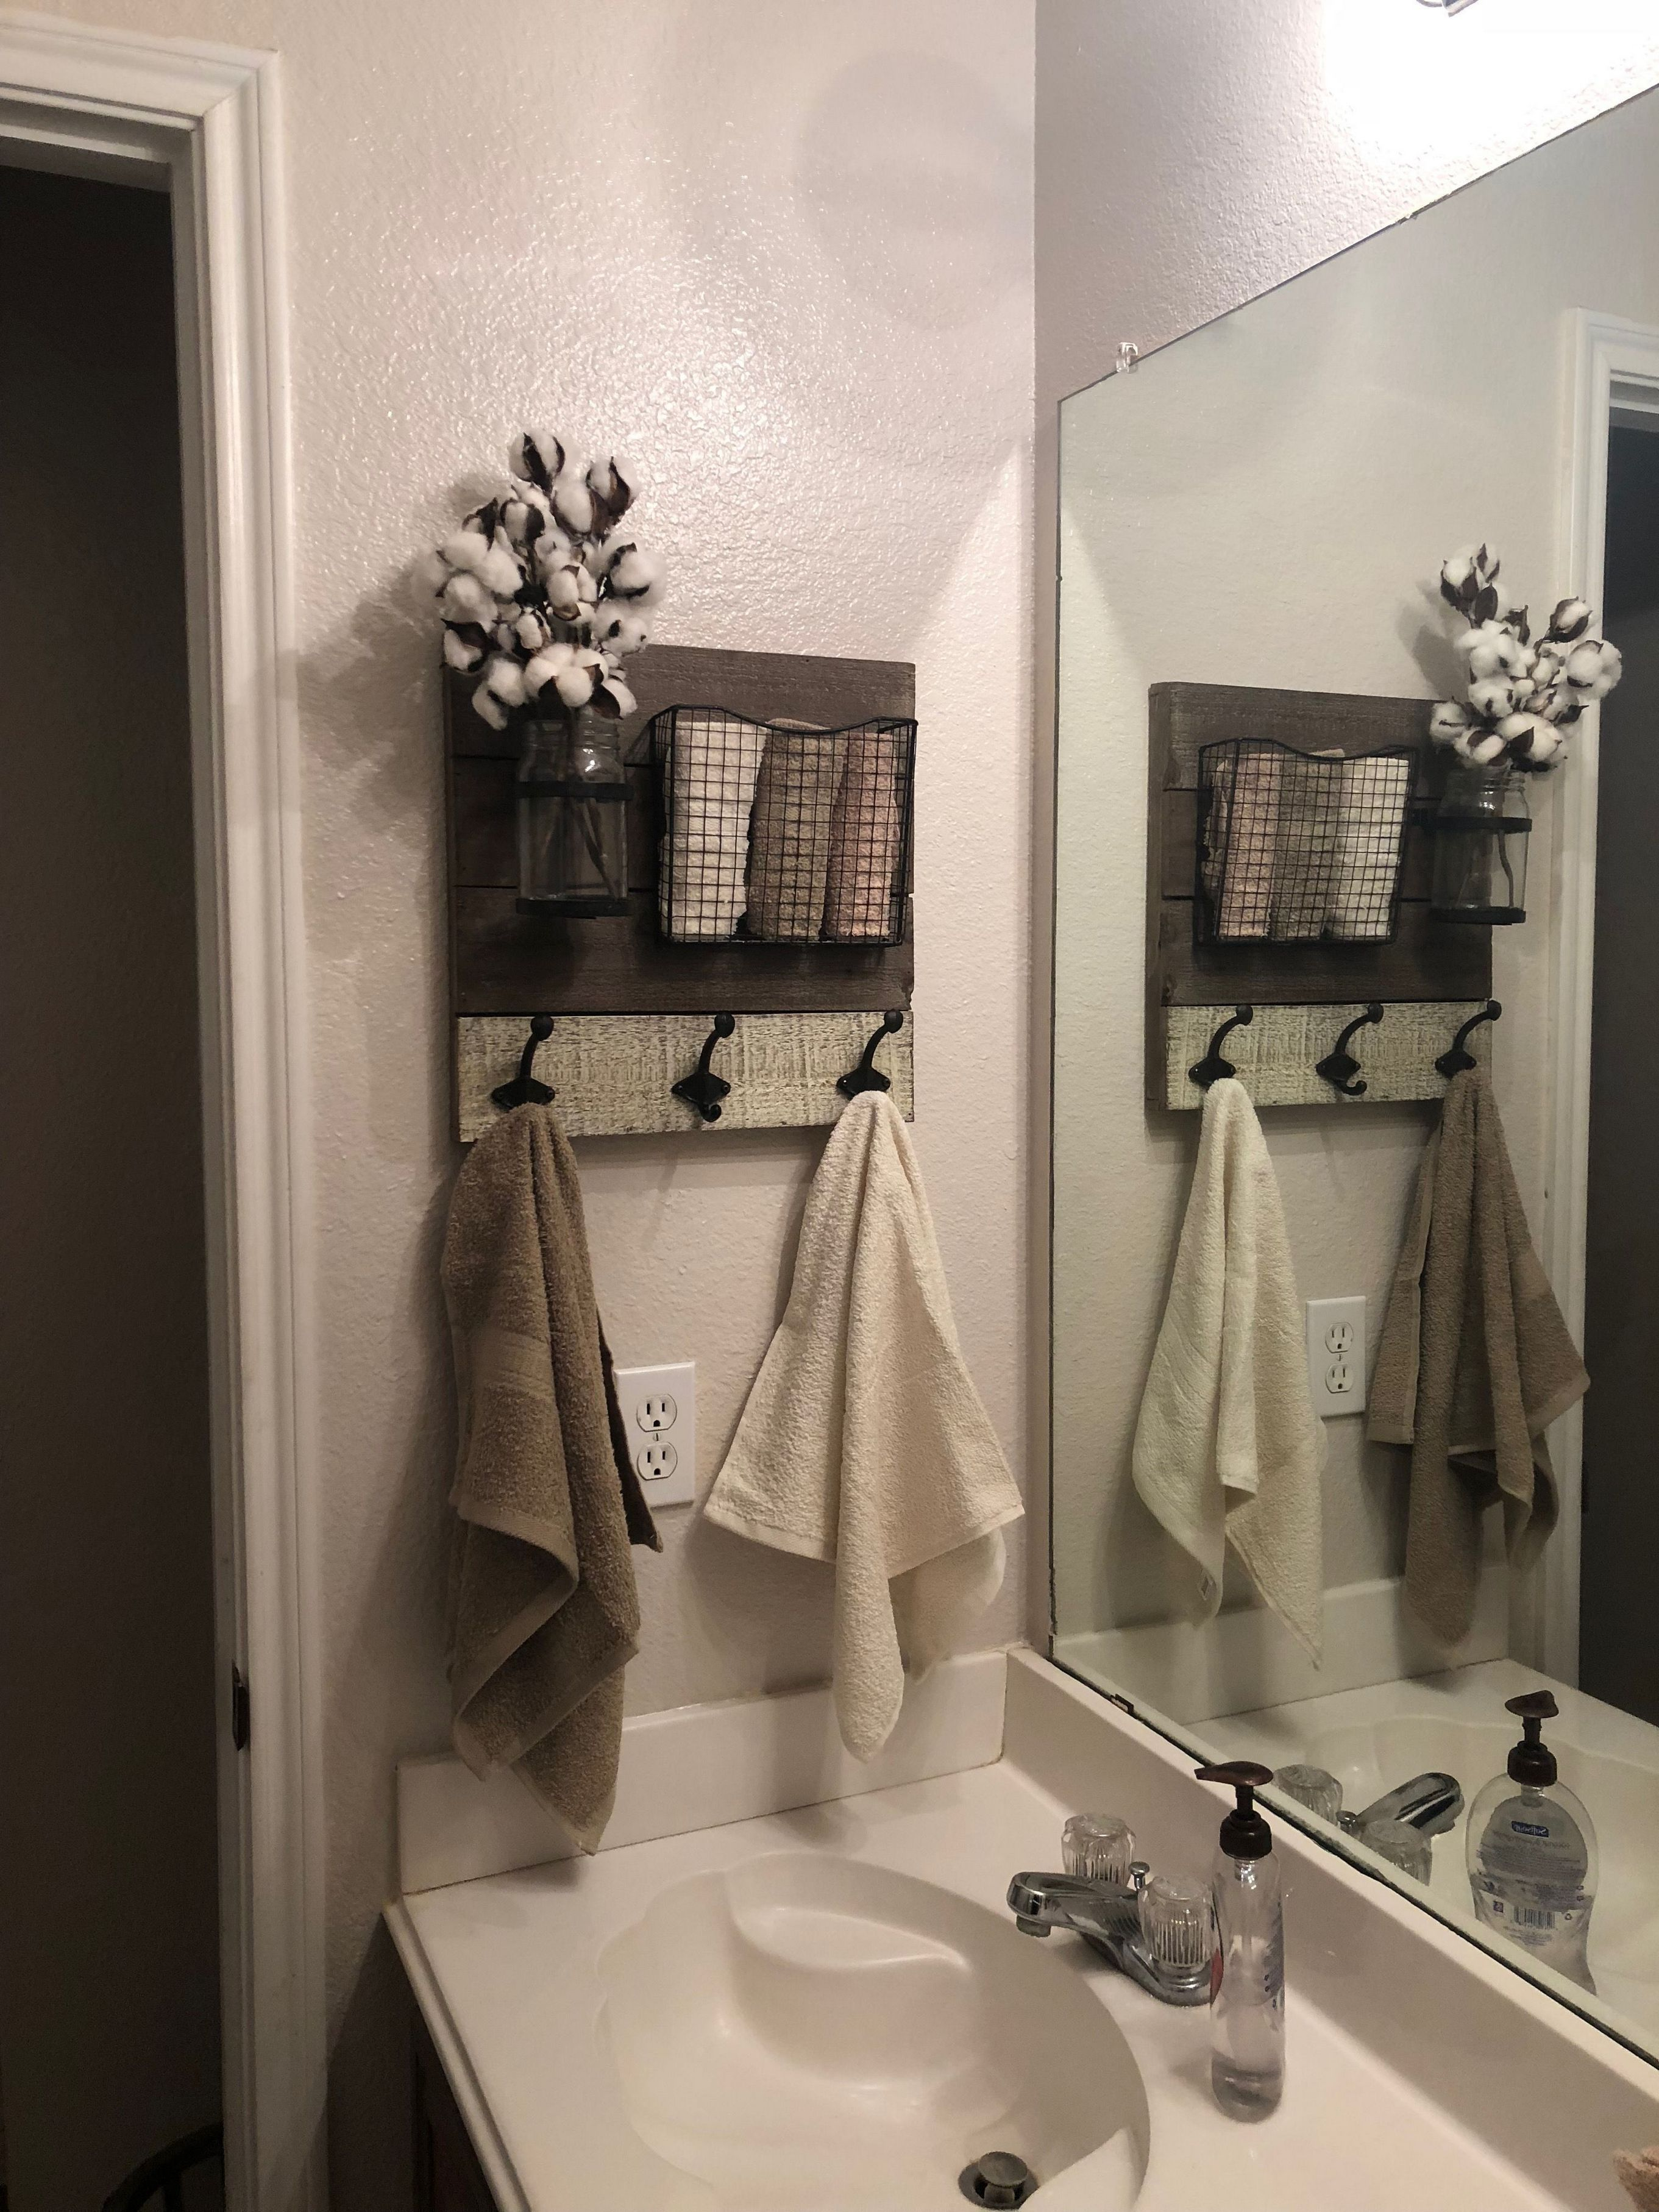 Repeat if you want many colors  lot of people believe their hair is darker also recoloring girls bathroom ideas to inspire home decor rh pinterest